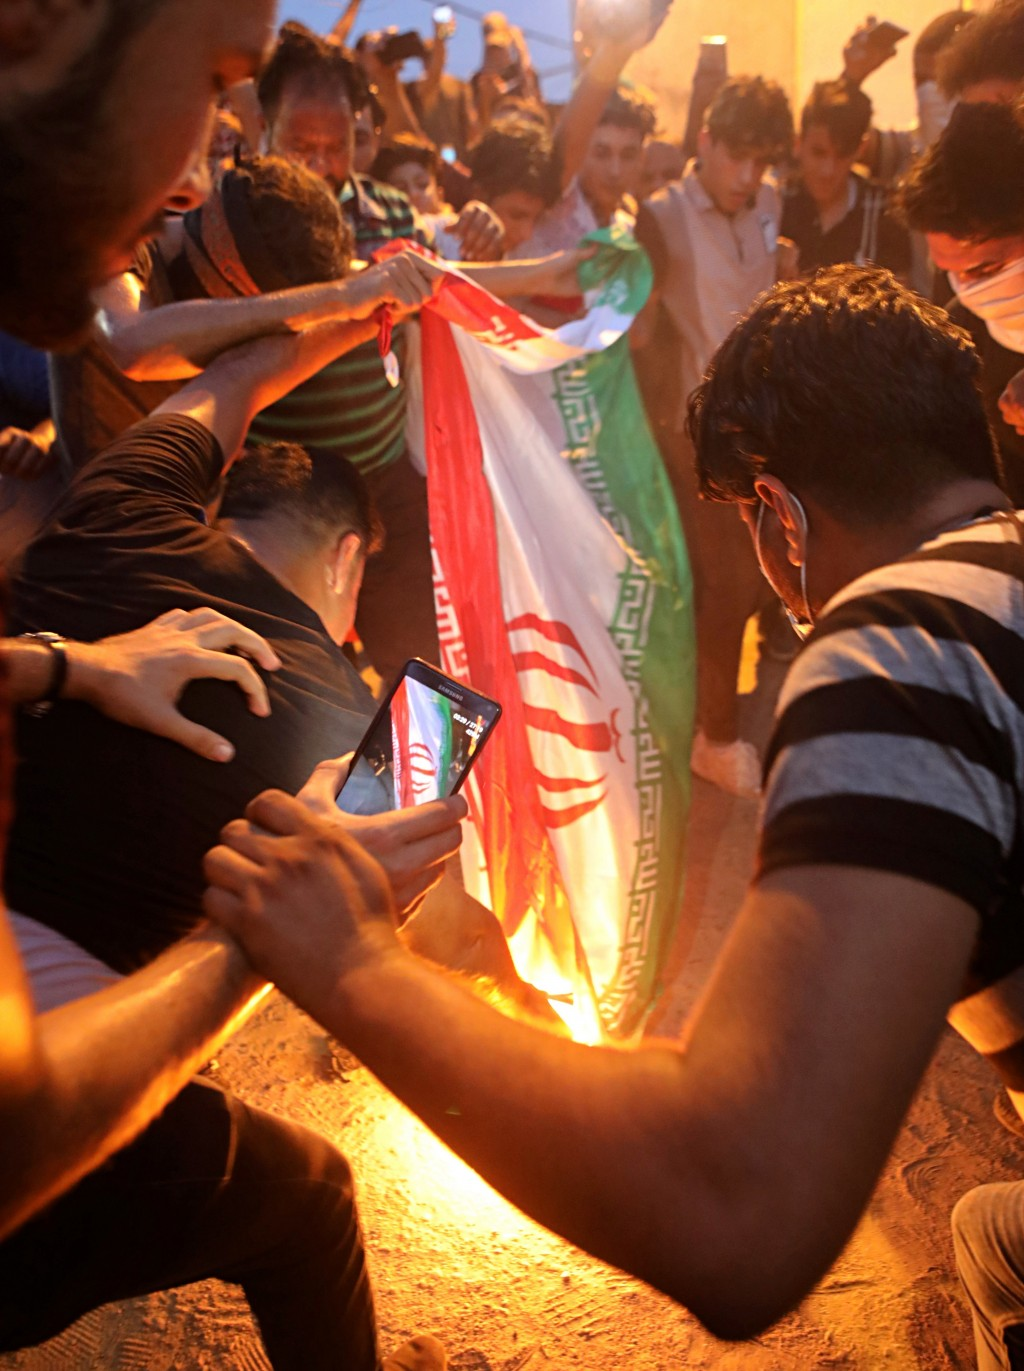 FILE - In this Friday, Sept. 7, 2018 file photo, protesters burn an Iranian flag after storming and burning the Iranian consulate building in Basra, I